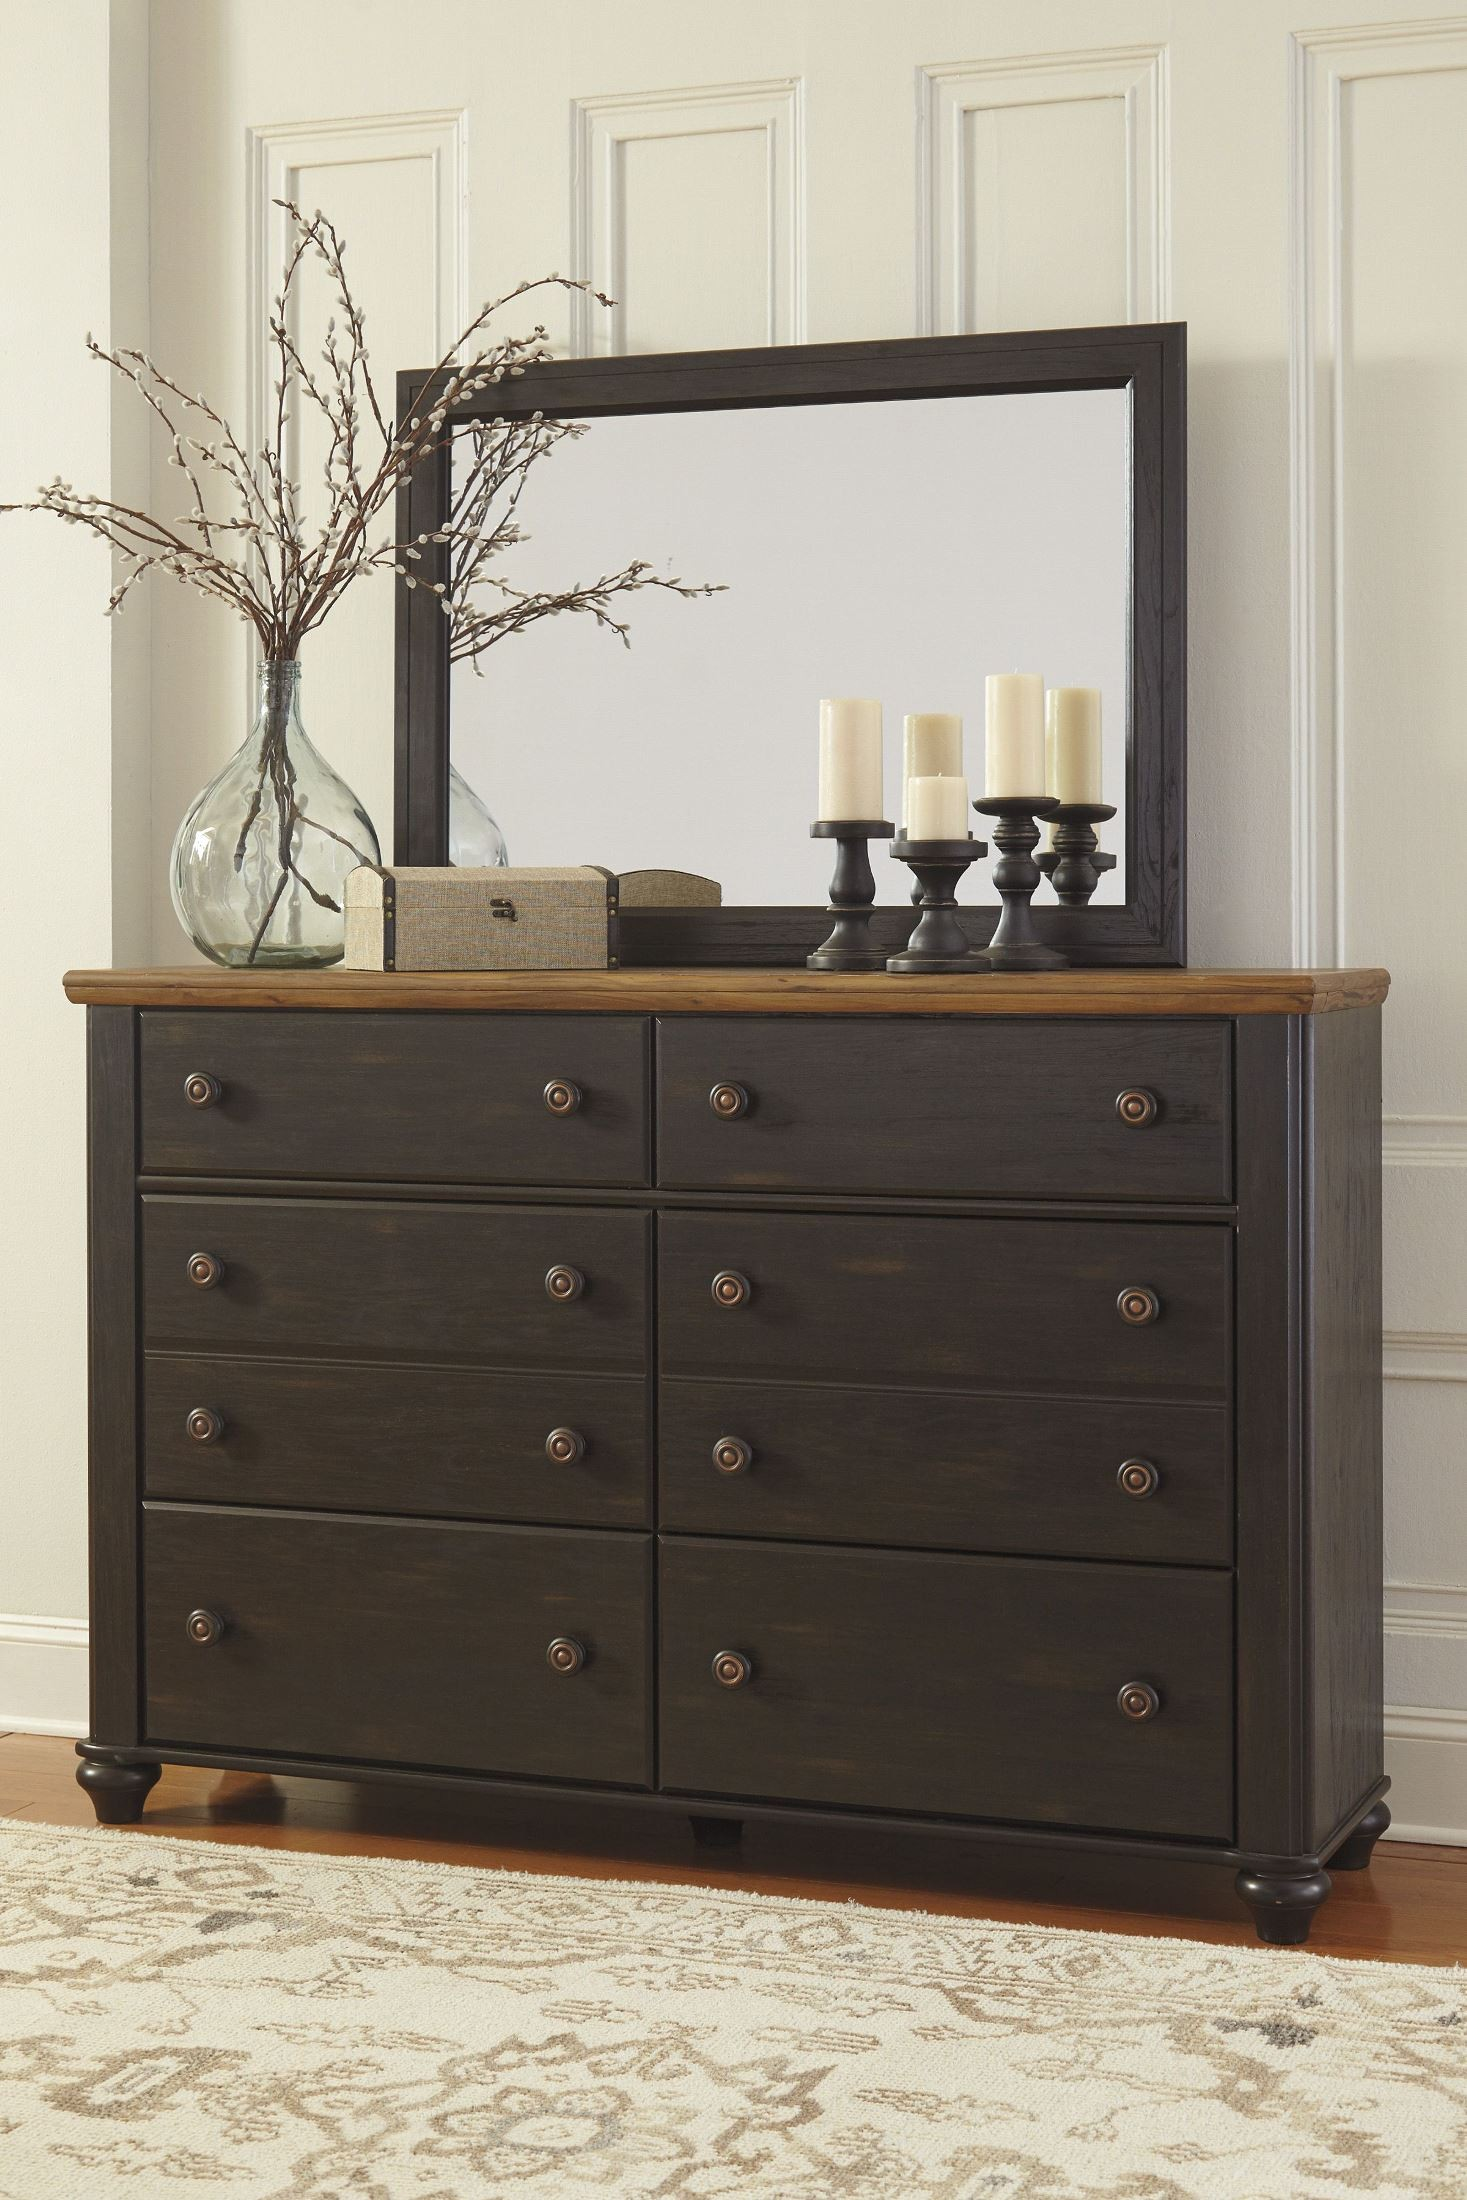 Maxington black and reddish brown panel bedroom set from for Dark brown bedroom furniture sets